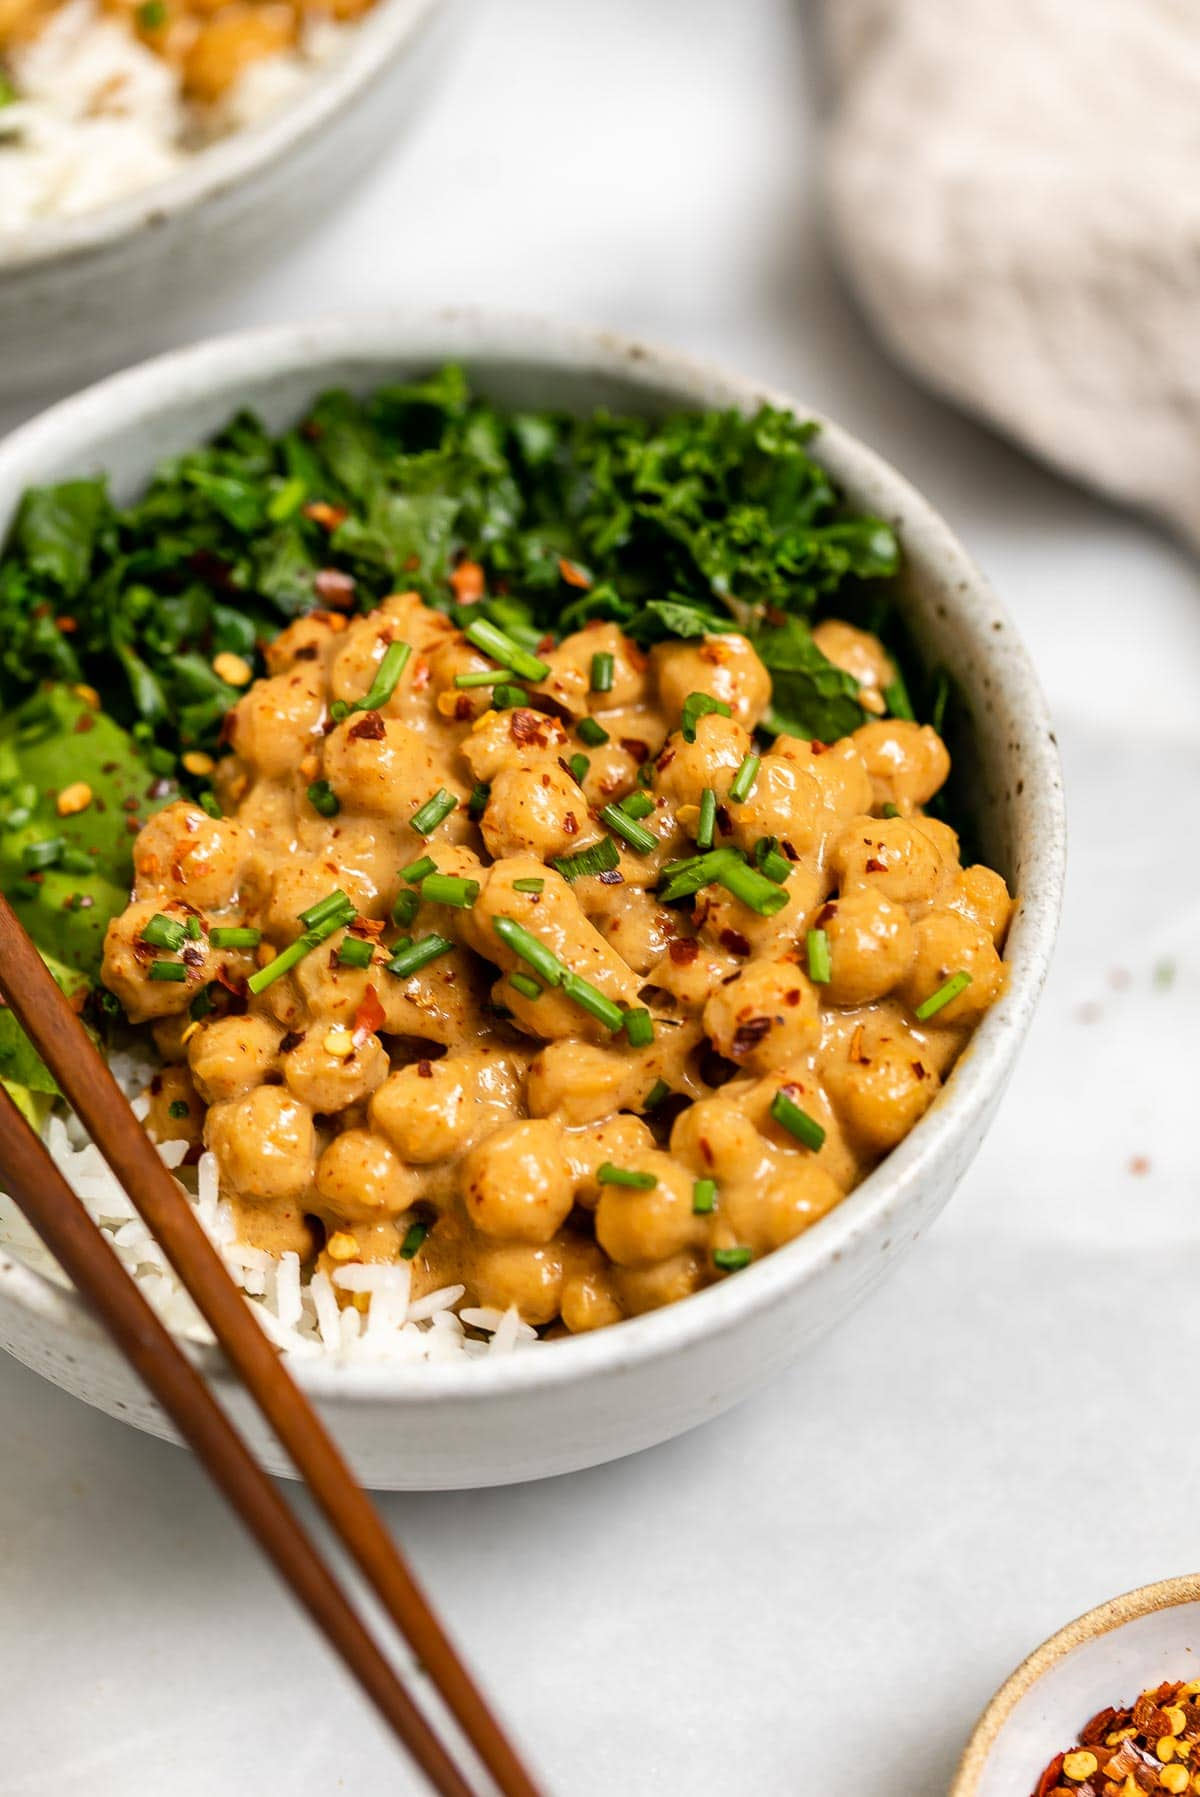 Veggie buddha bowl with chickpeas, rice and kale.